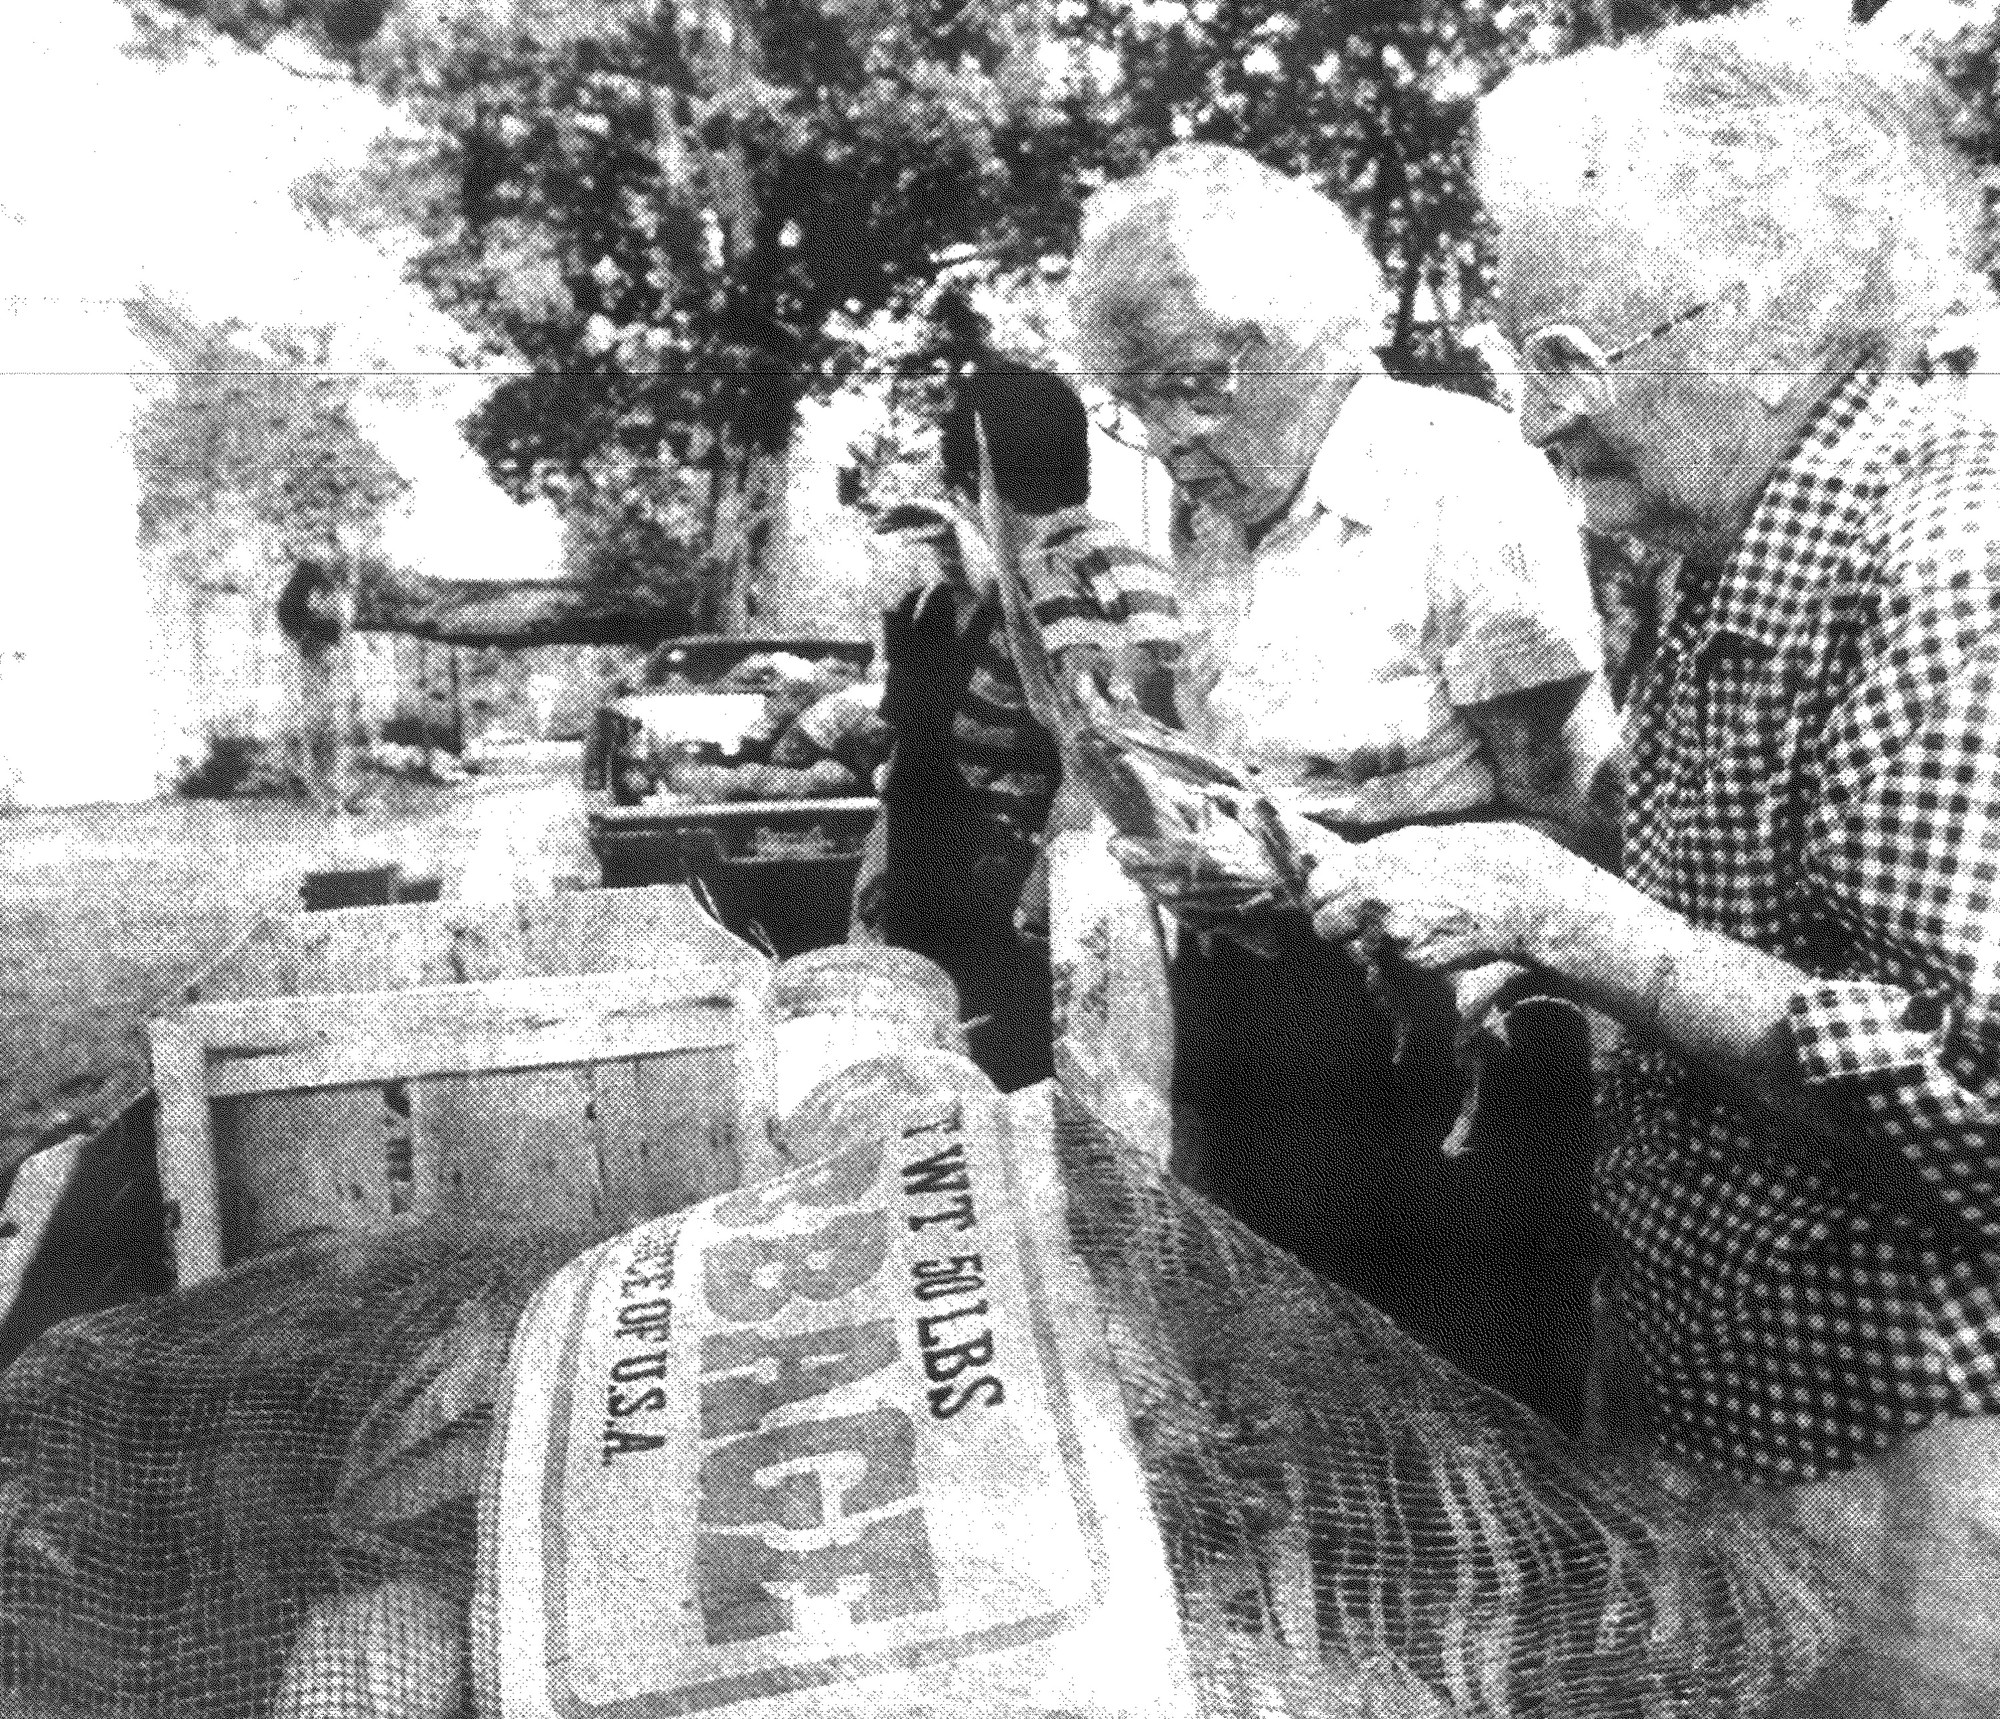 1993 - Marion Young, right, and Helen Carroll examine corn for sale at the Seeds of Hope farmers market at First Presbyterian Church.